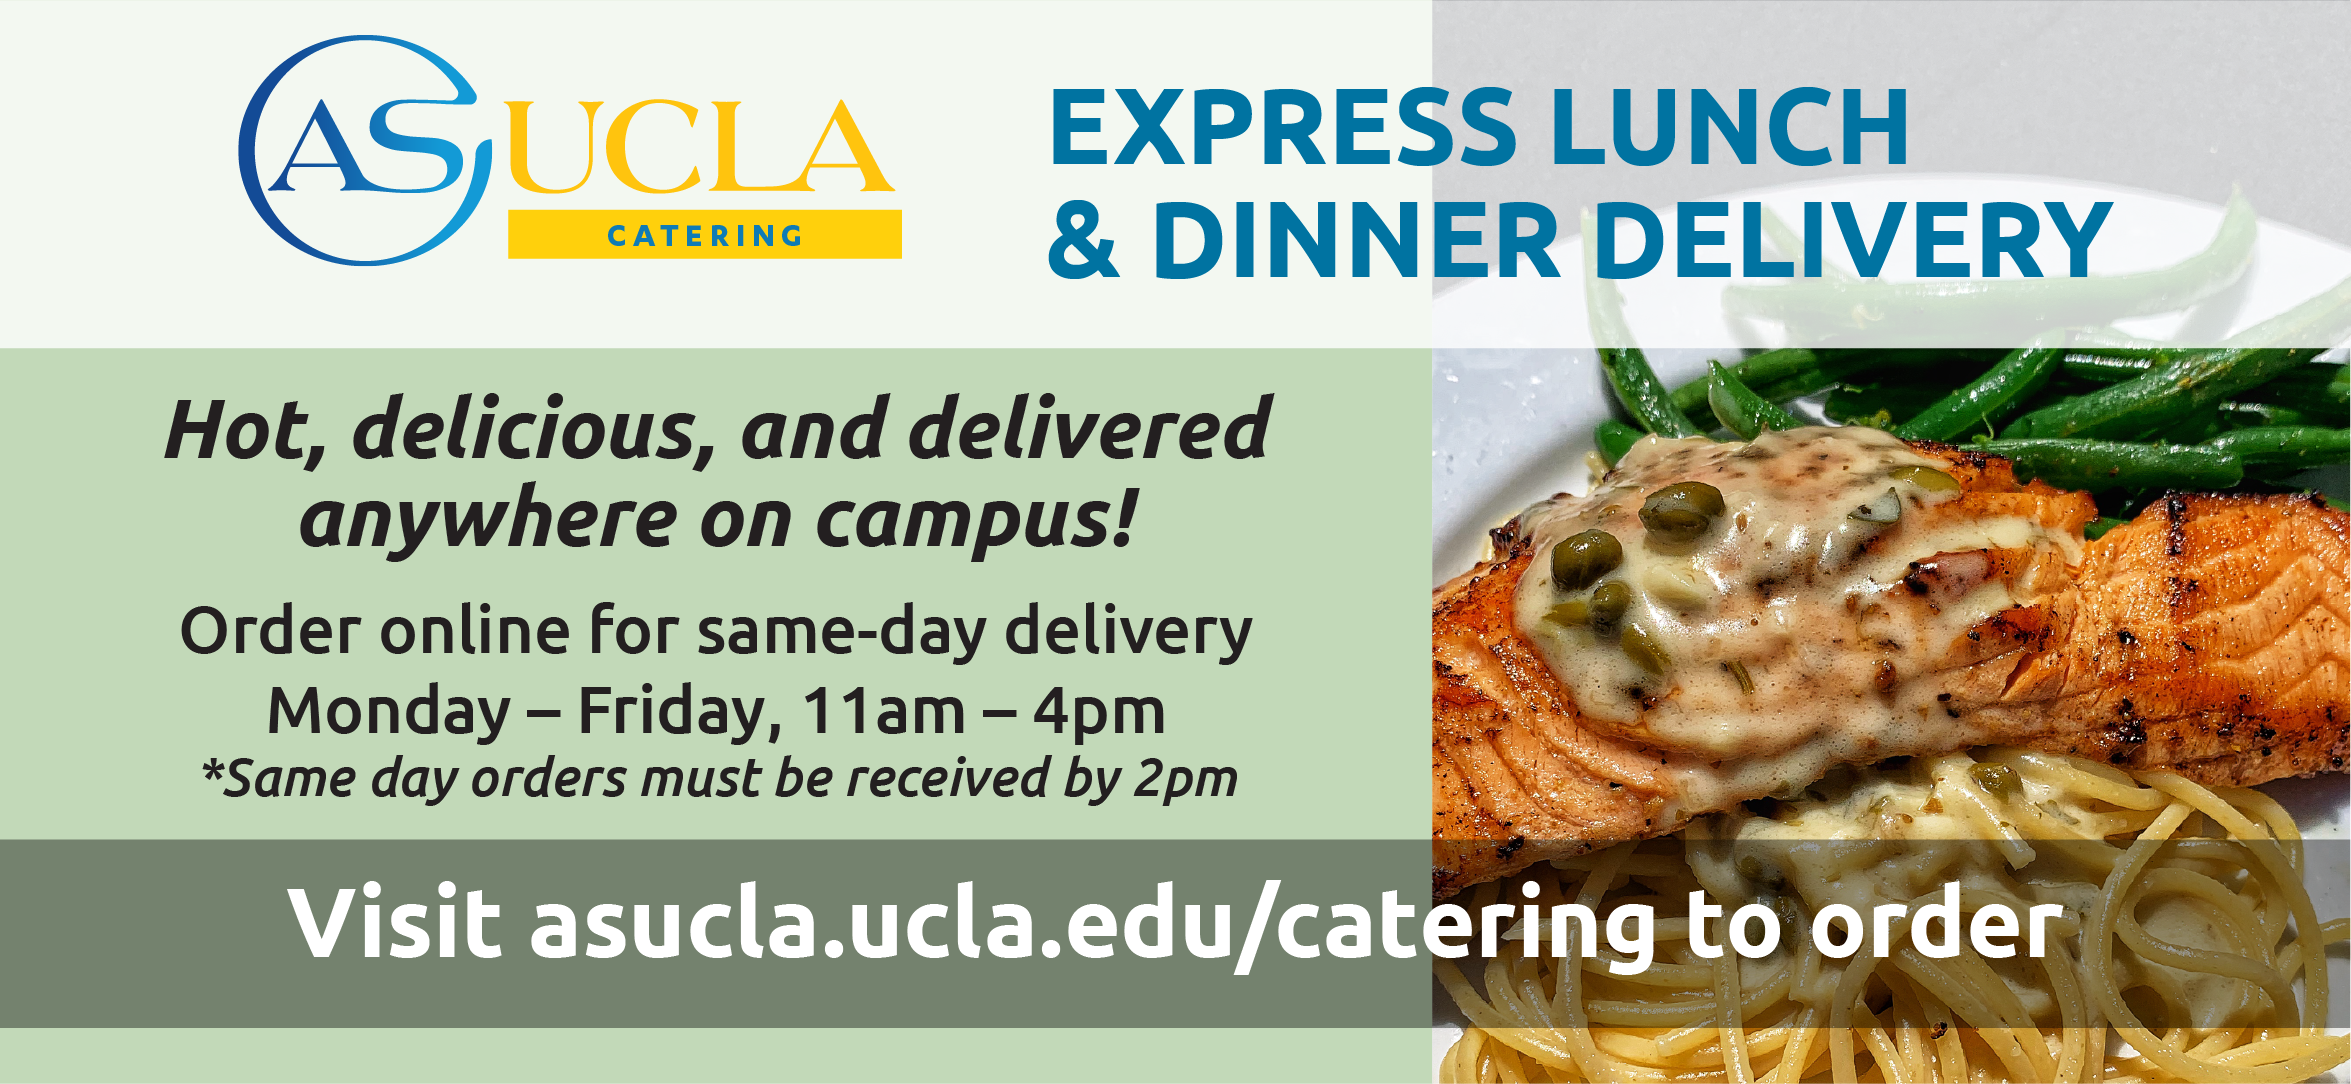 ASUCLA Catering - Express Lunch & Dinner Delivery